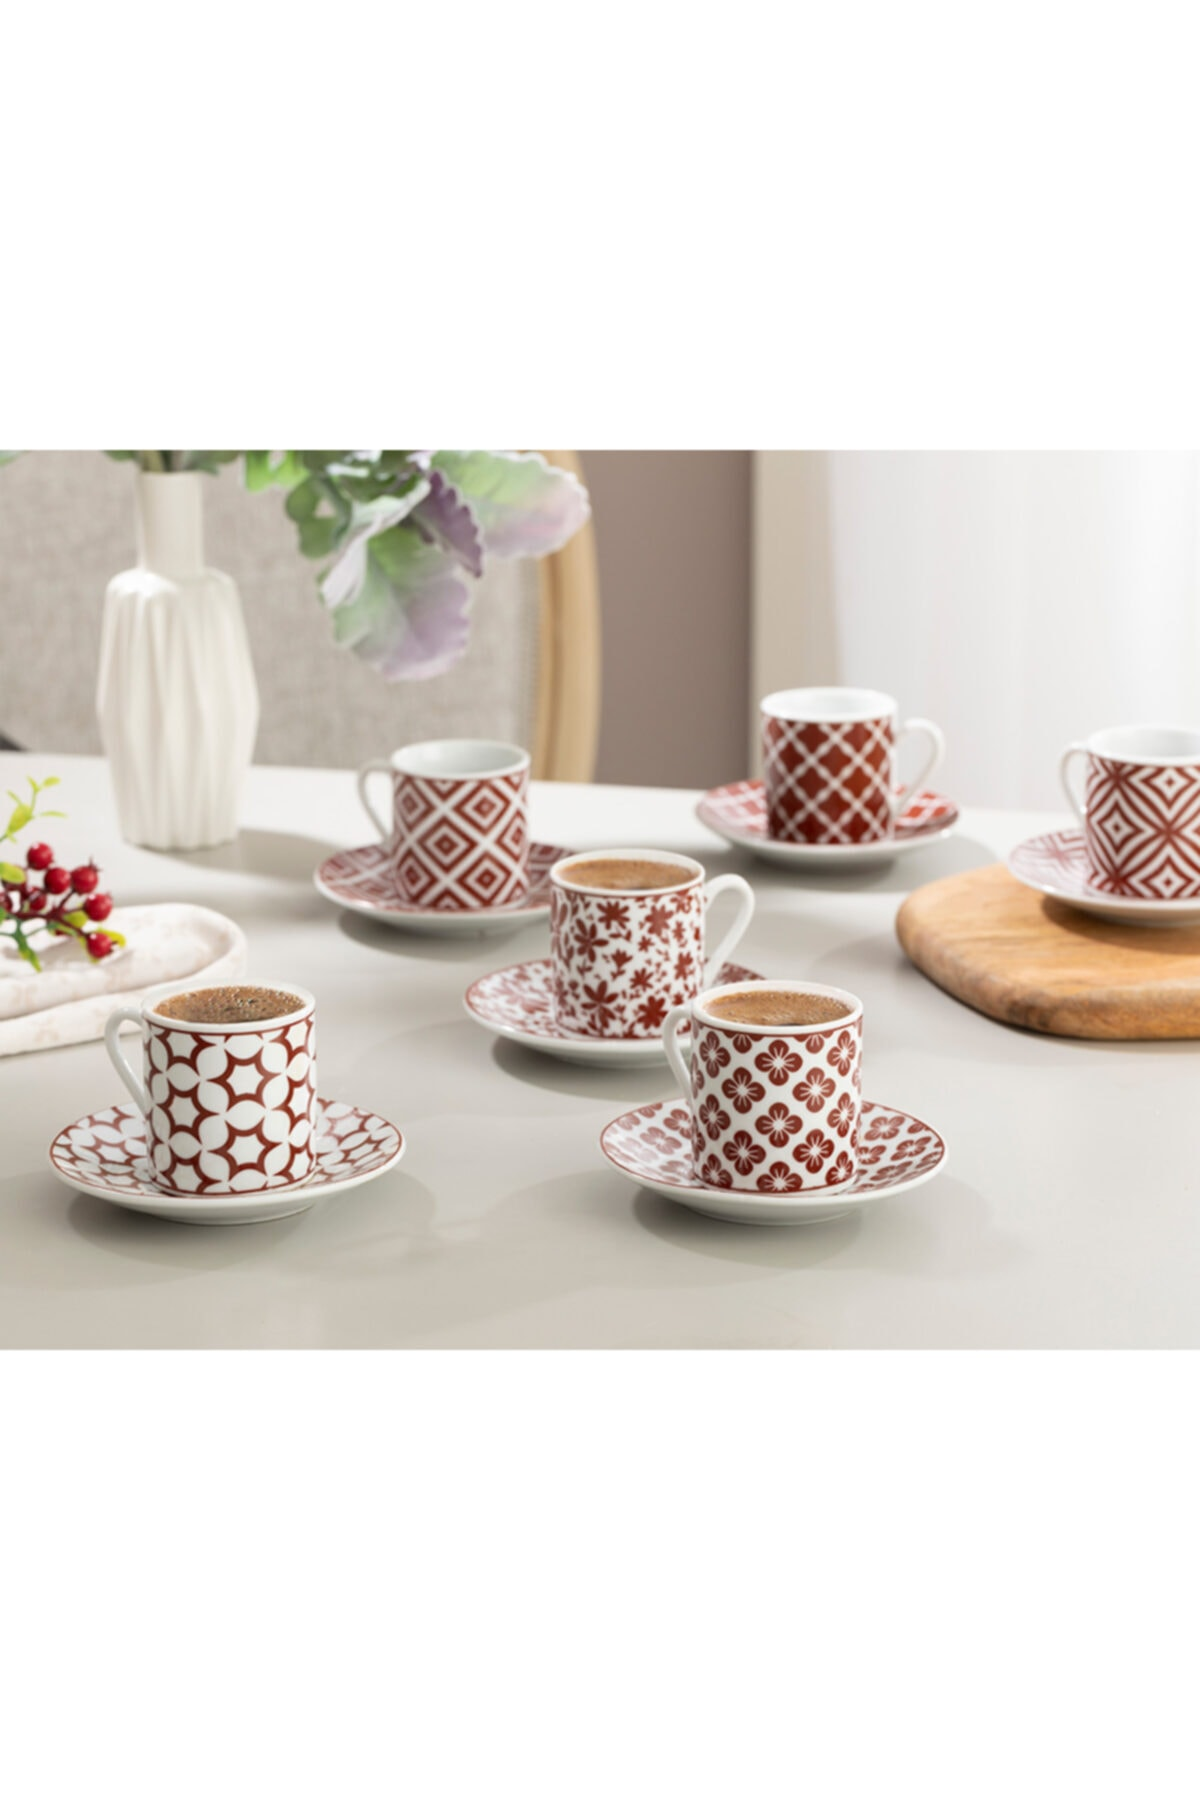 English Home Bordo Mira Porselen Kahve Fincan Takımı 80 ml 2